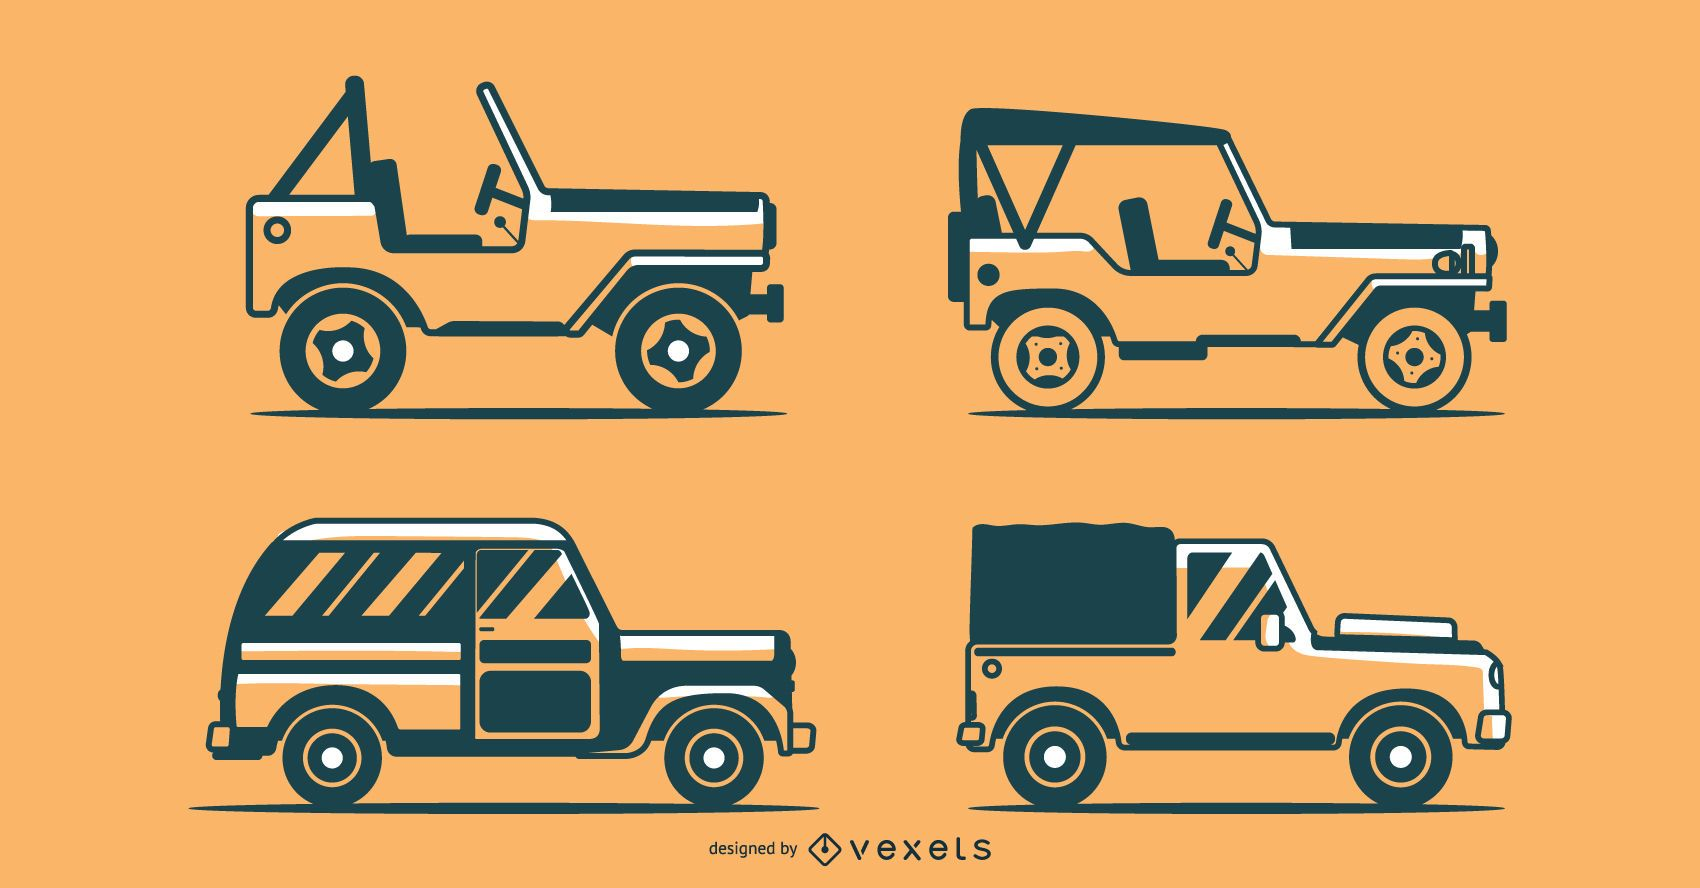 Off-road Vehicle Vector Collection